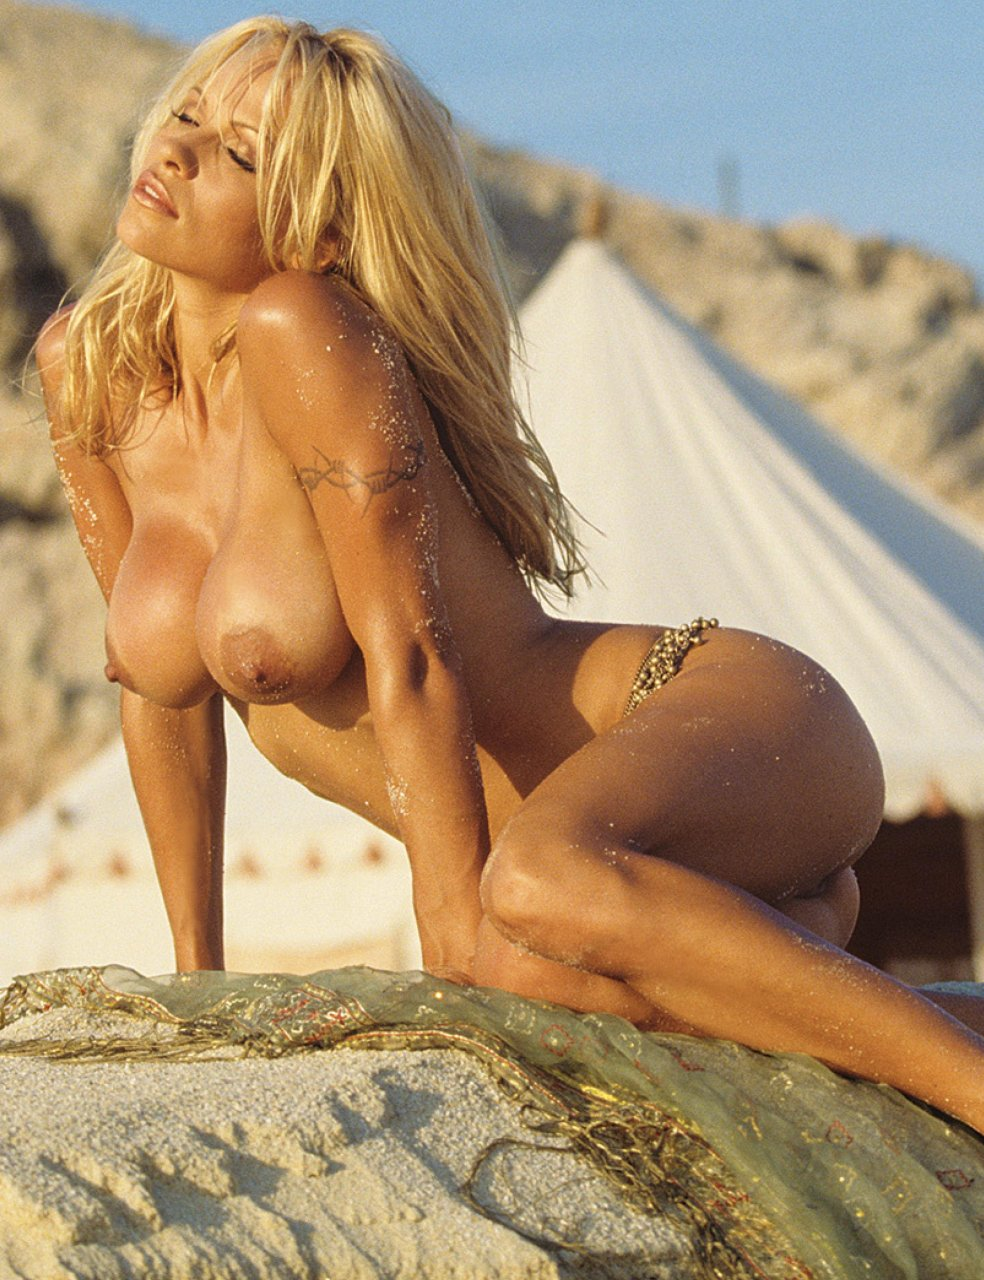 from Sawyer pamela anderson naked in playboy torrent